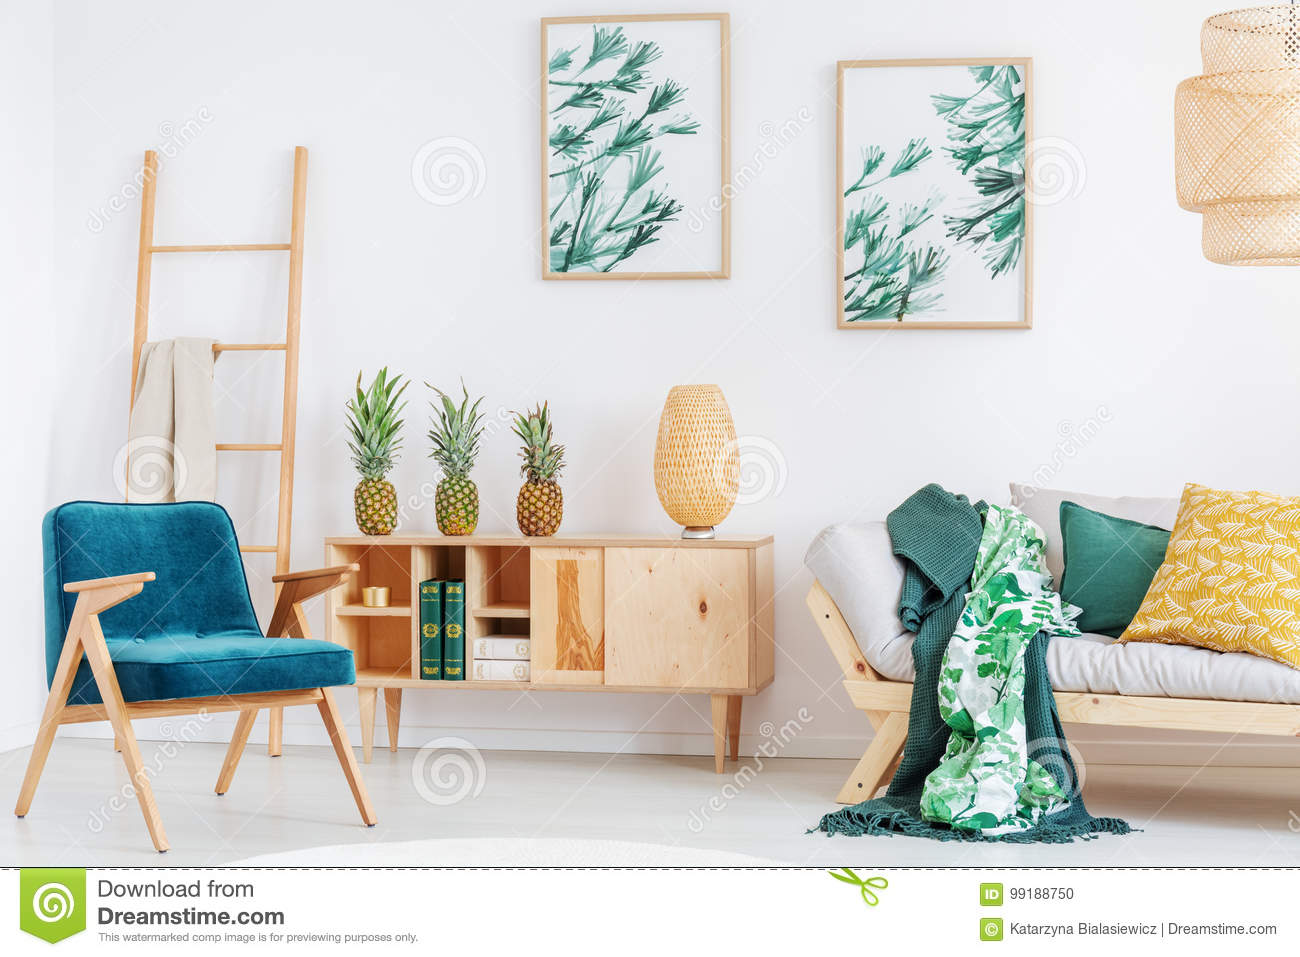 Blue Retro Chair And Yellow Pillow On Beige Sofa In Cozy Room With Pineapples Rustic Cupboard